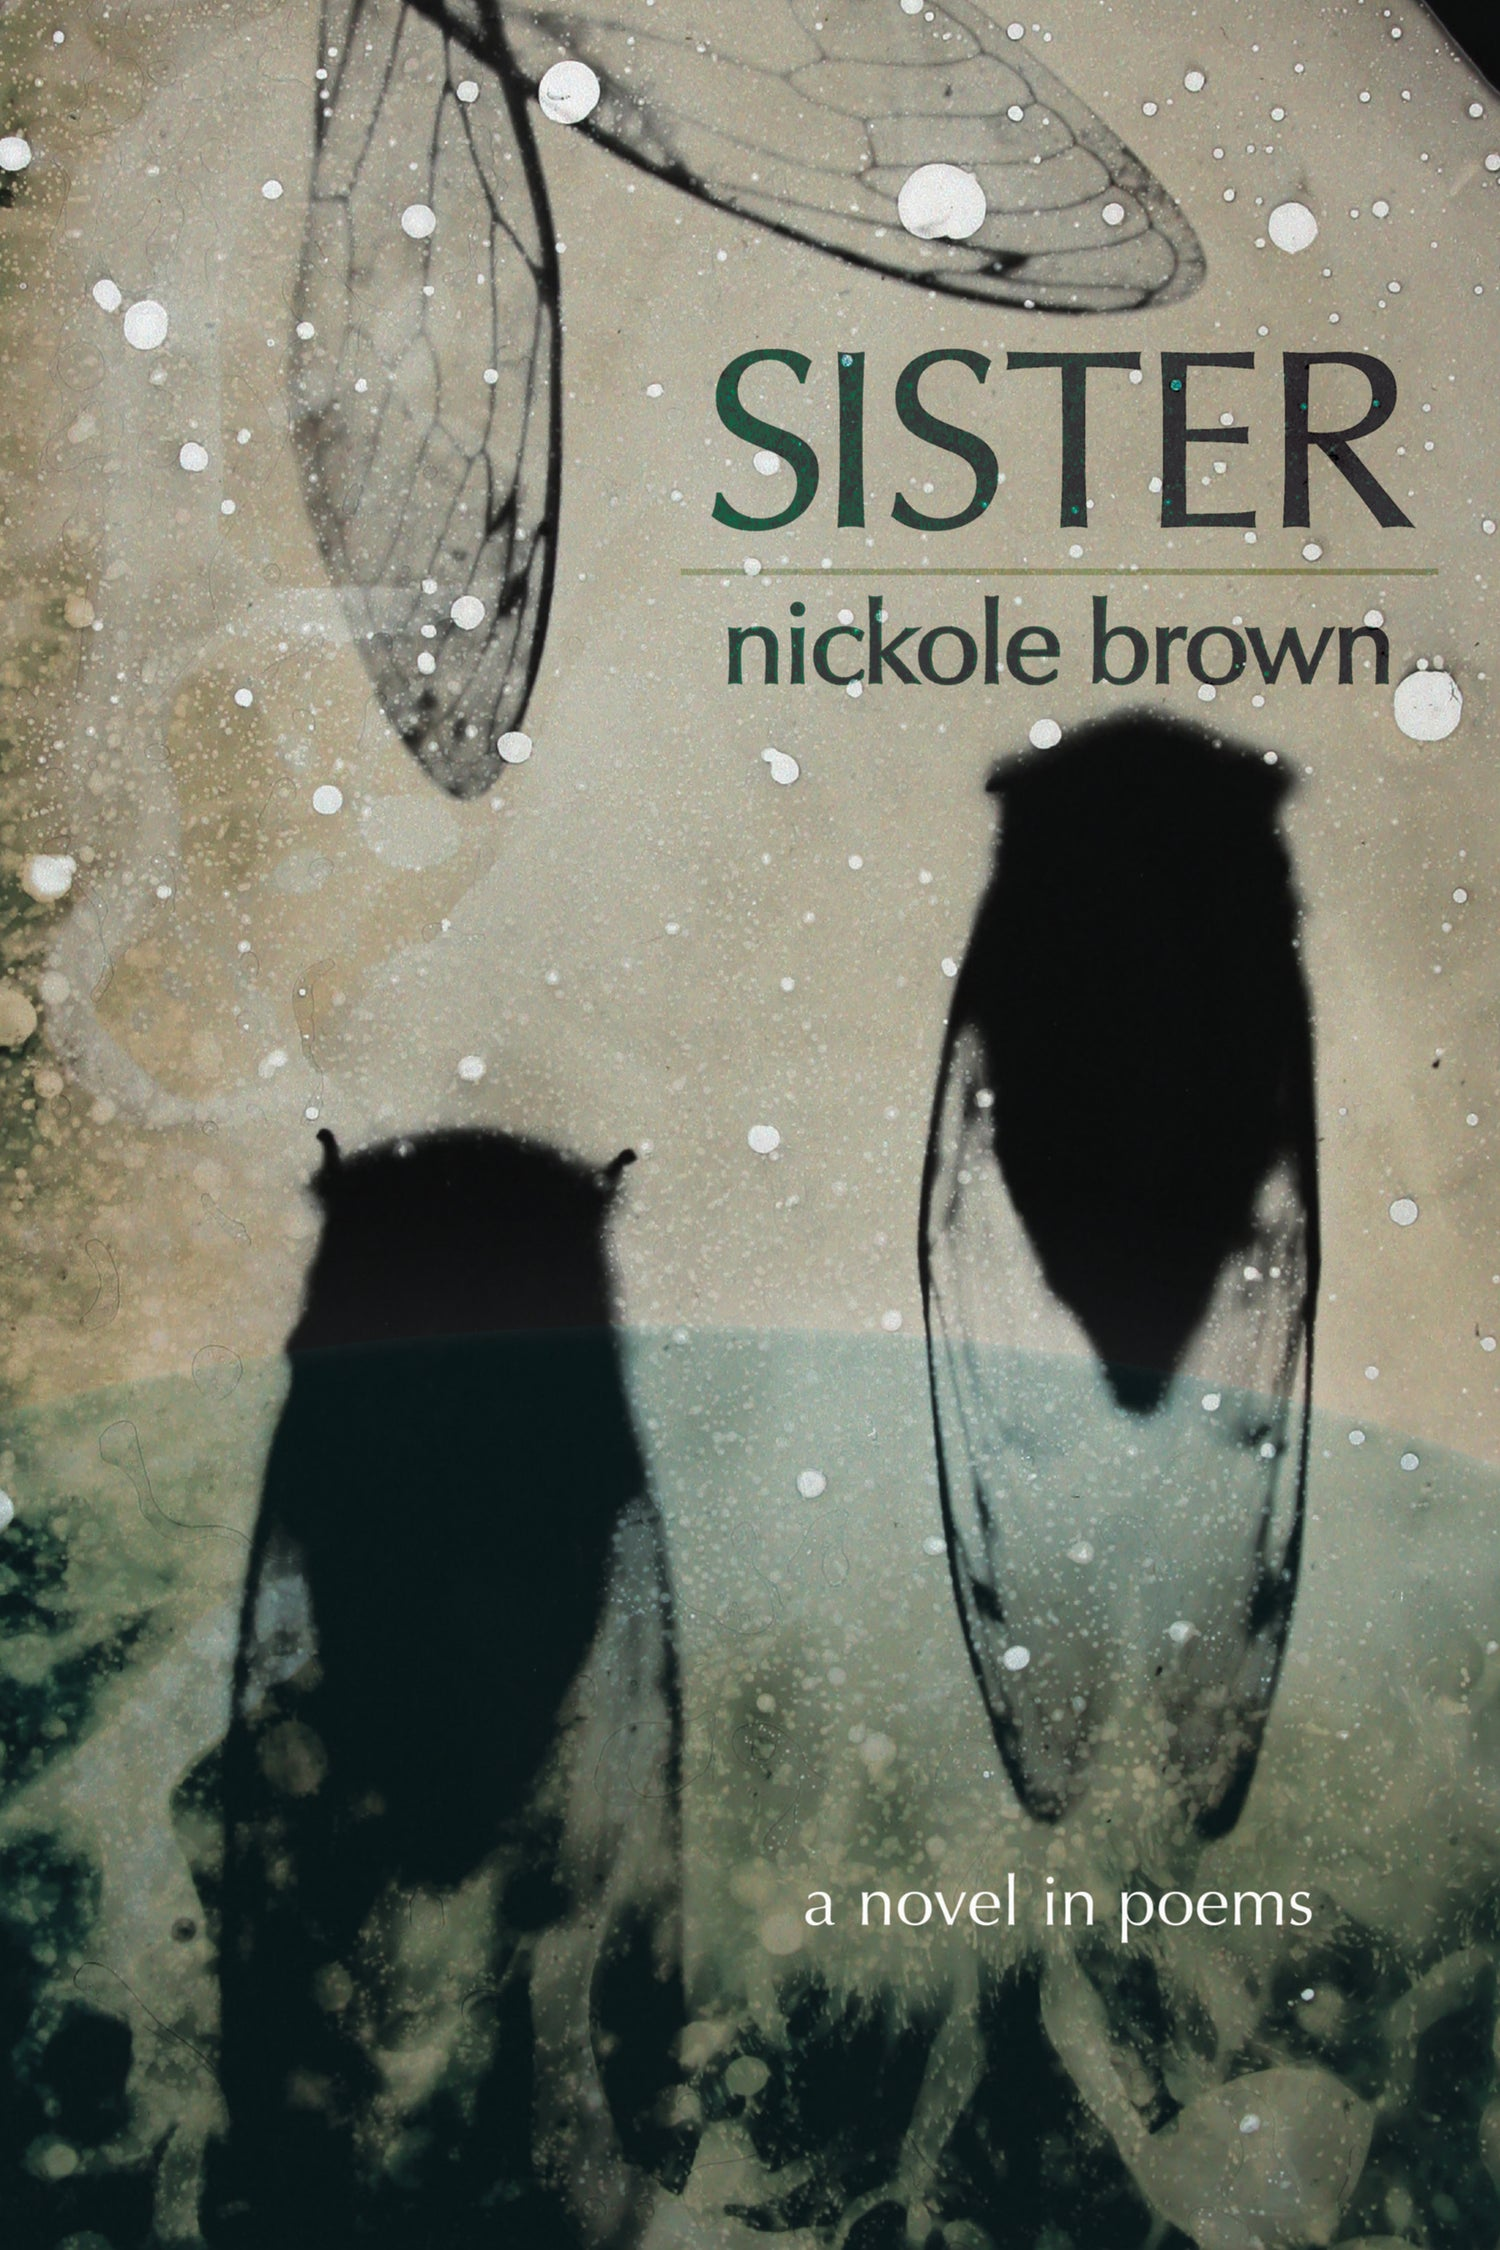 Image of Sister by Nickole Brown